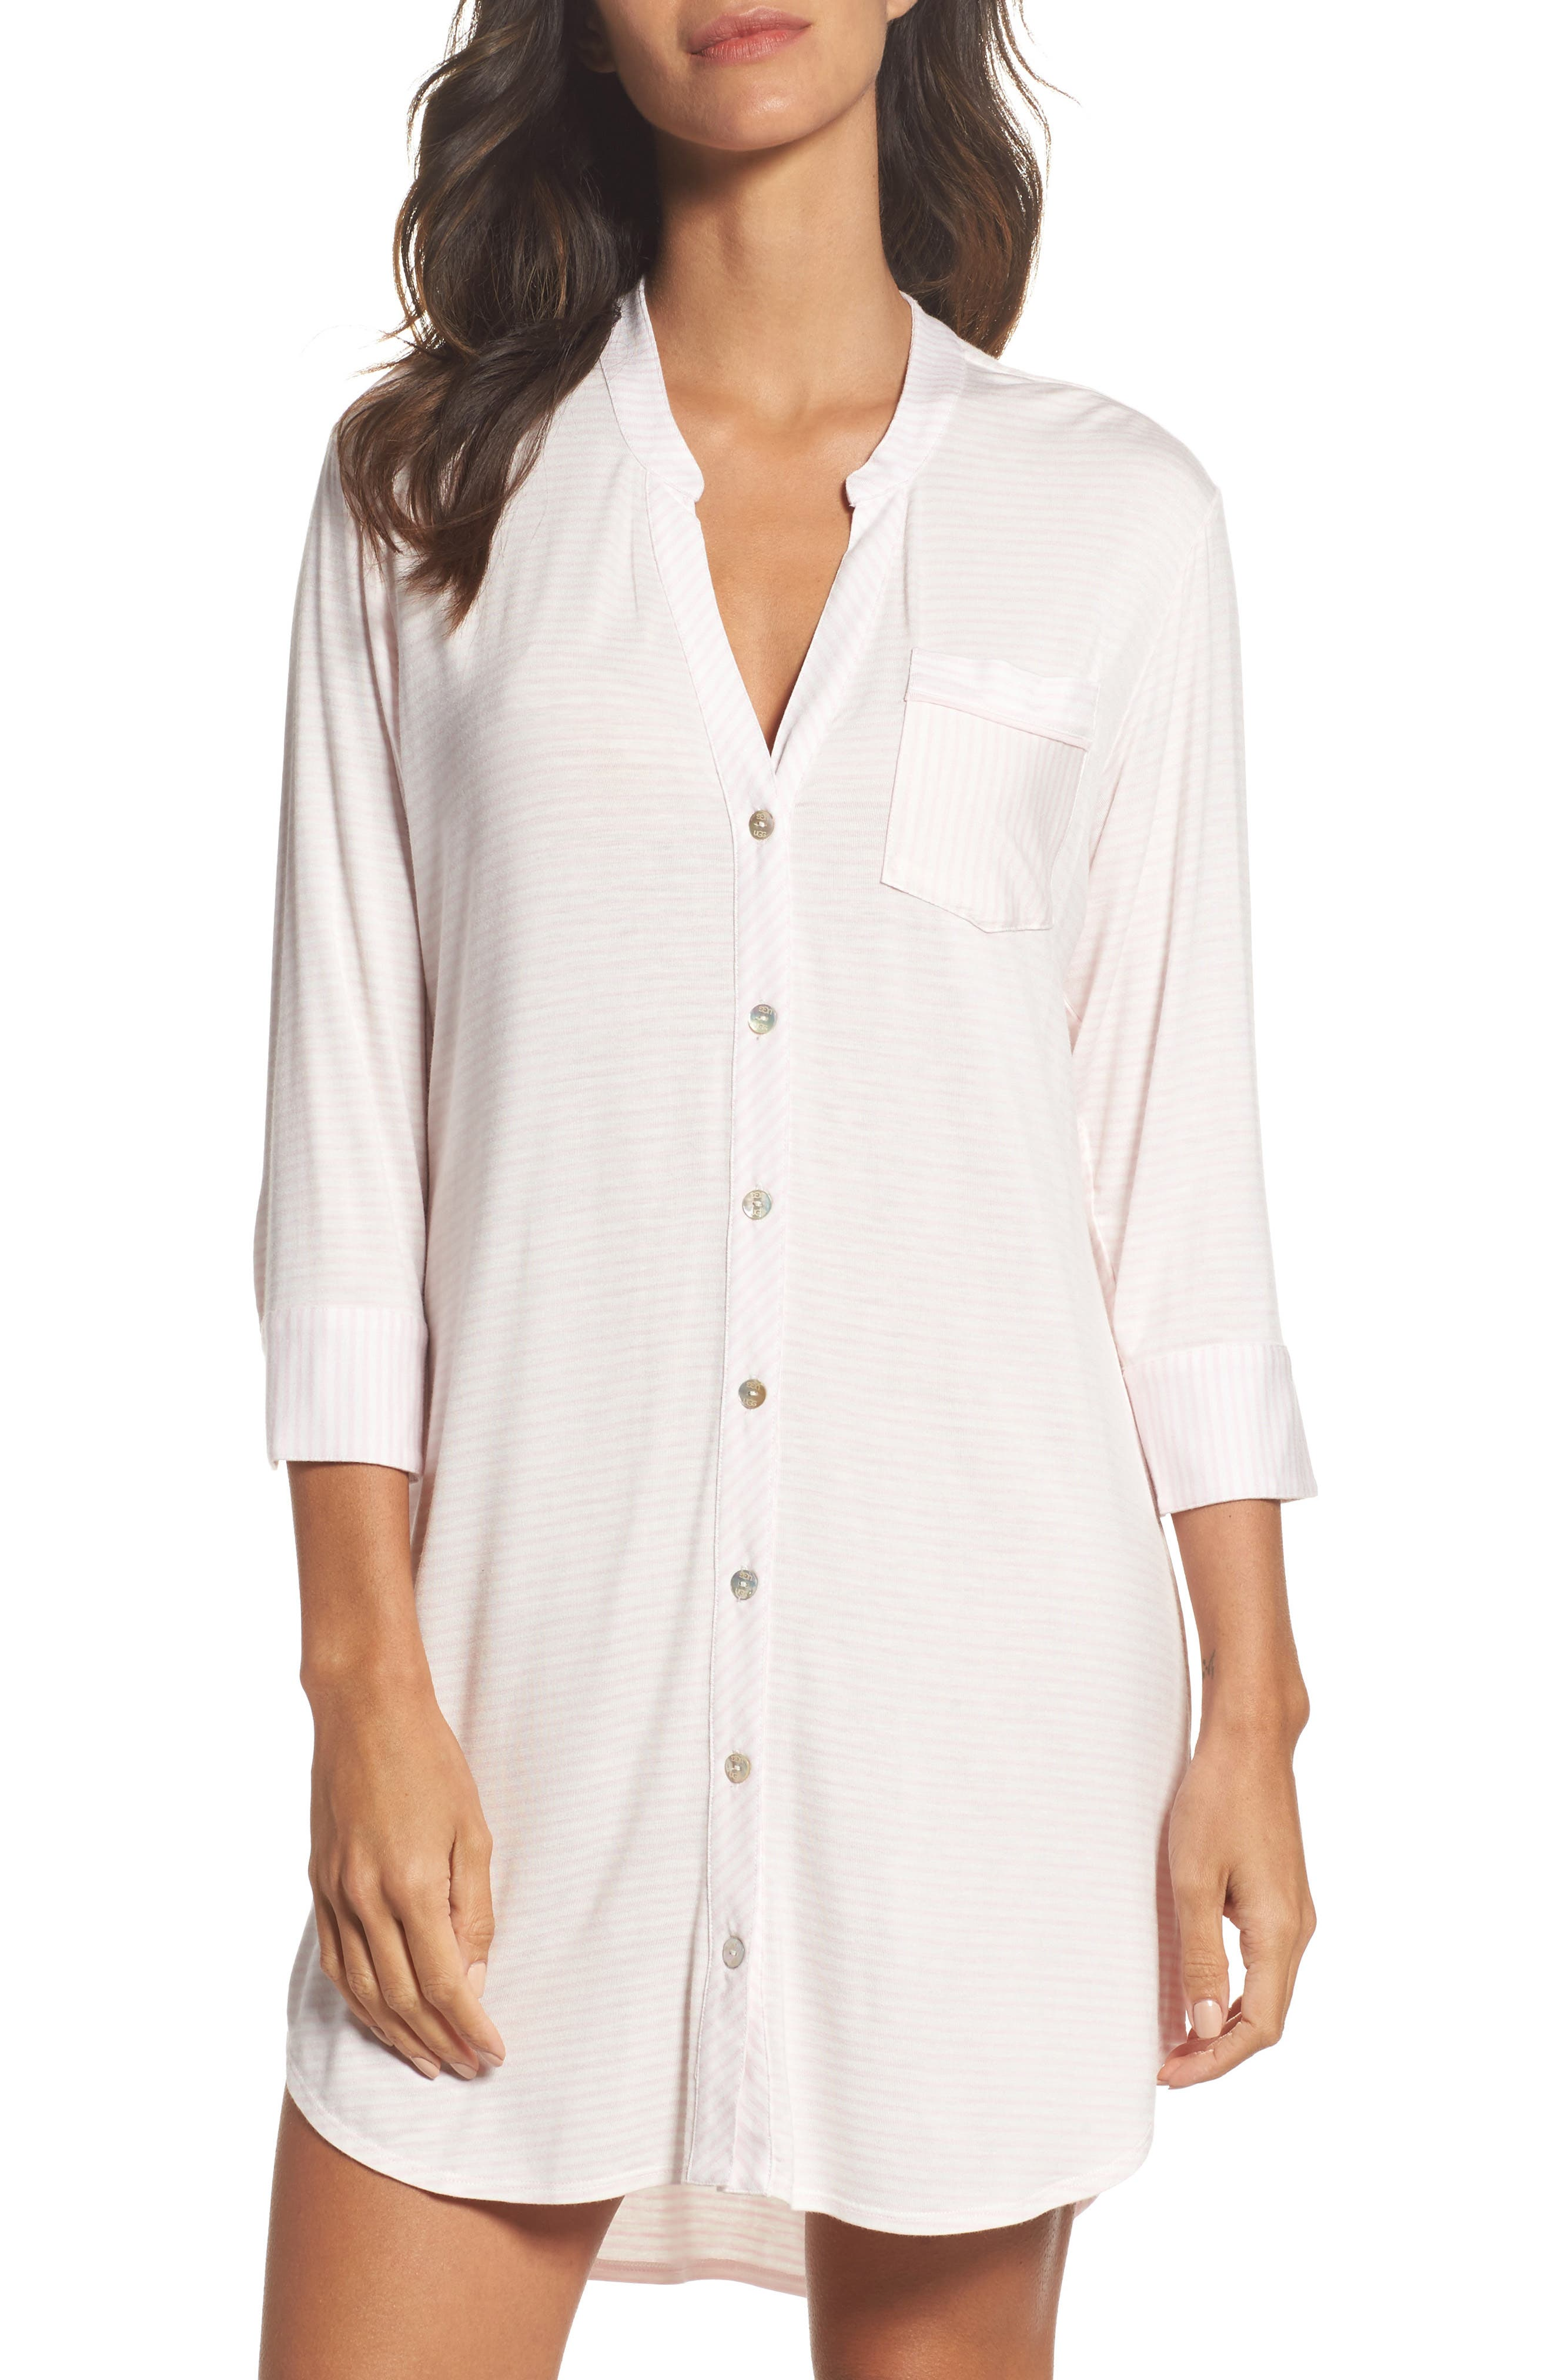 Vivian Sleep Shirt,                             Main thumbnail 1, color,                             Seashell Pink/ White